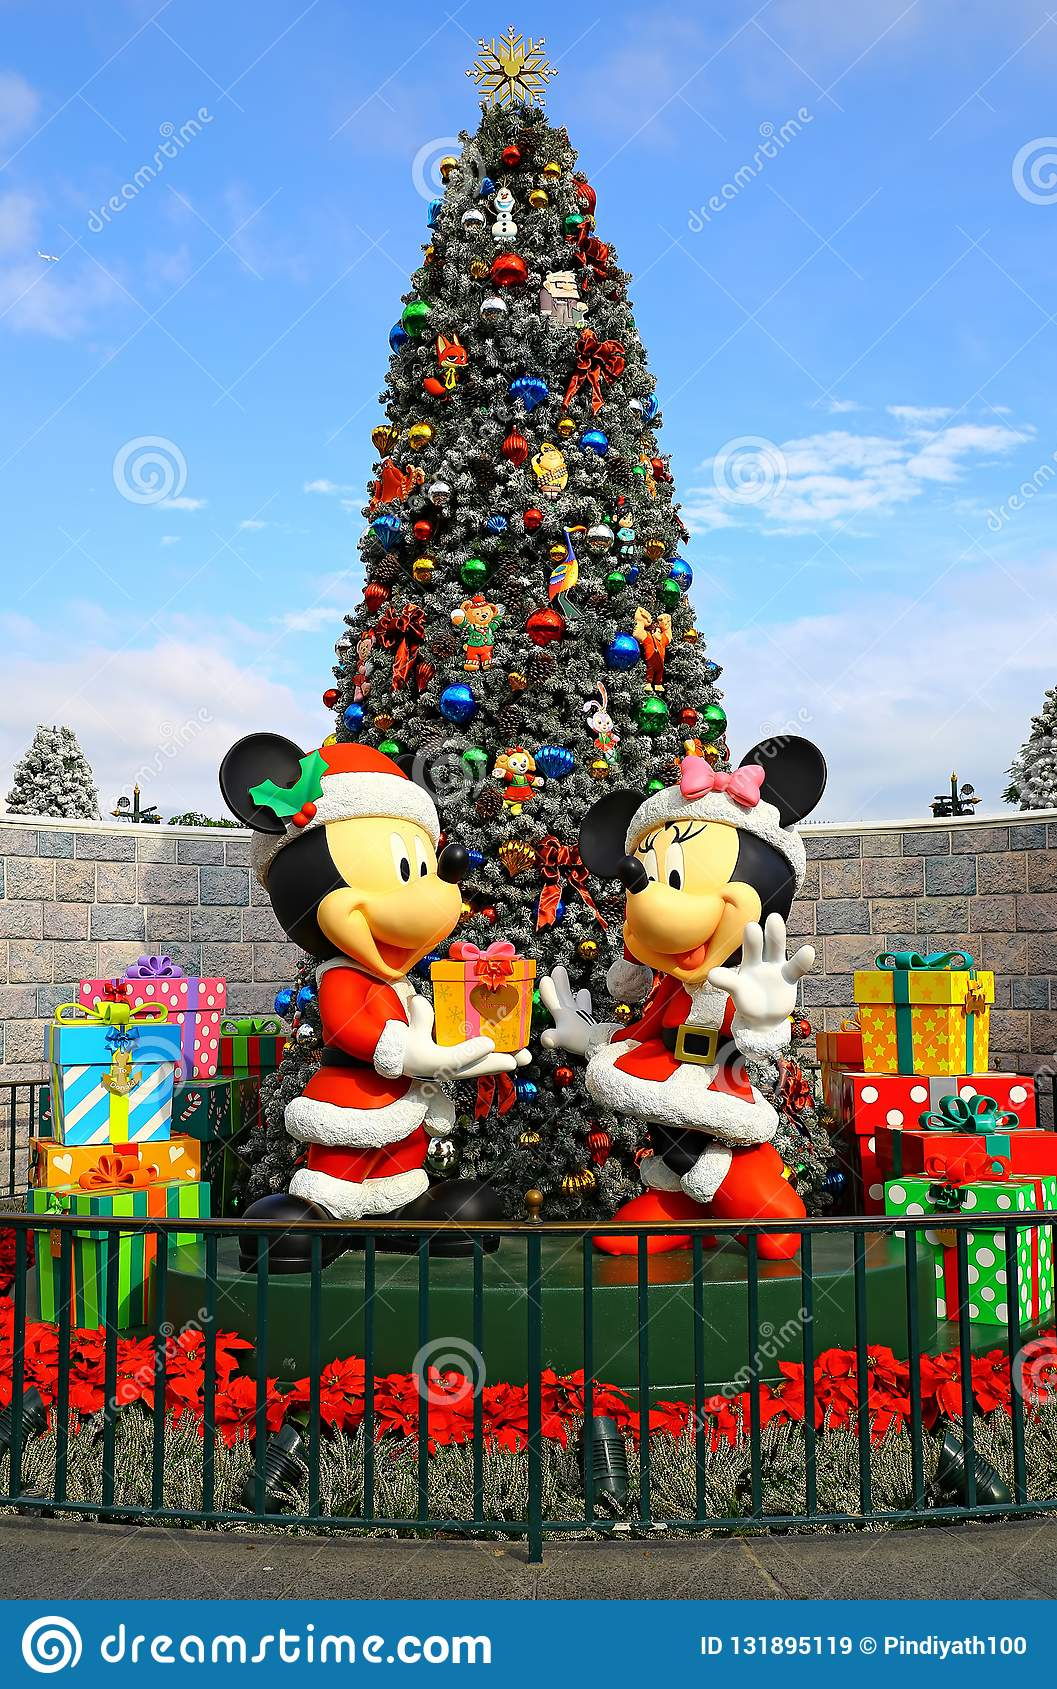 Christmas Minnie Mouse Disneyland.Mickey And Minnie Mouse Christmas At Disneyland Hong Kong